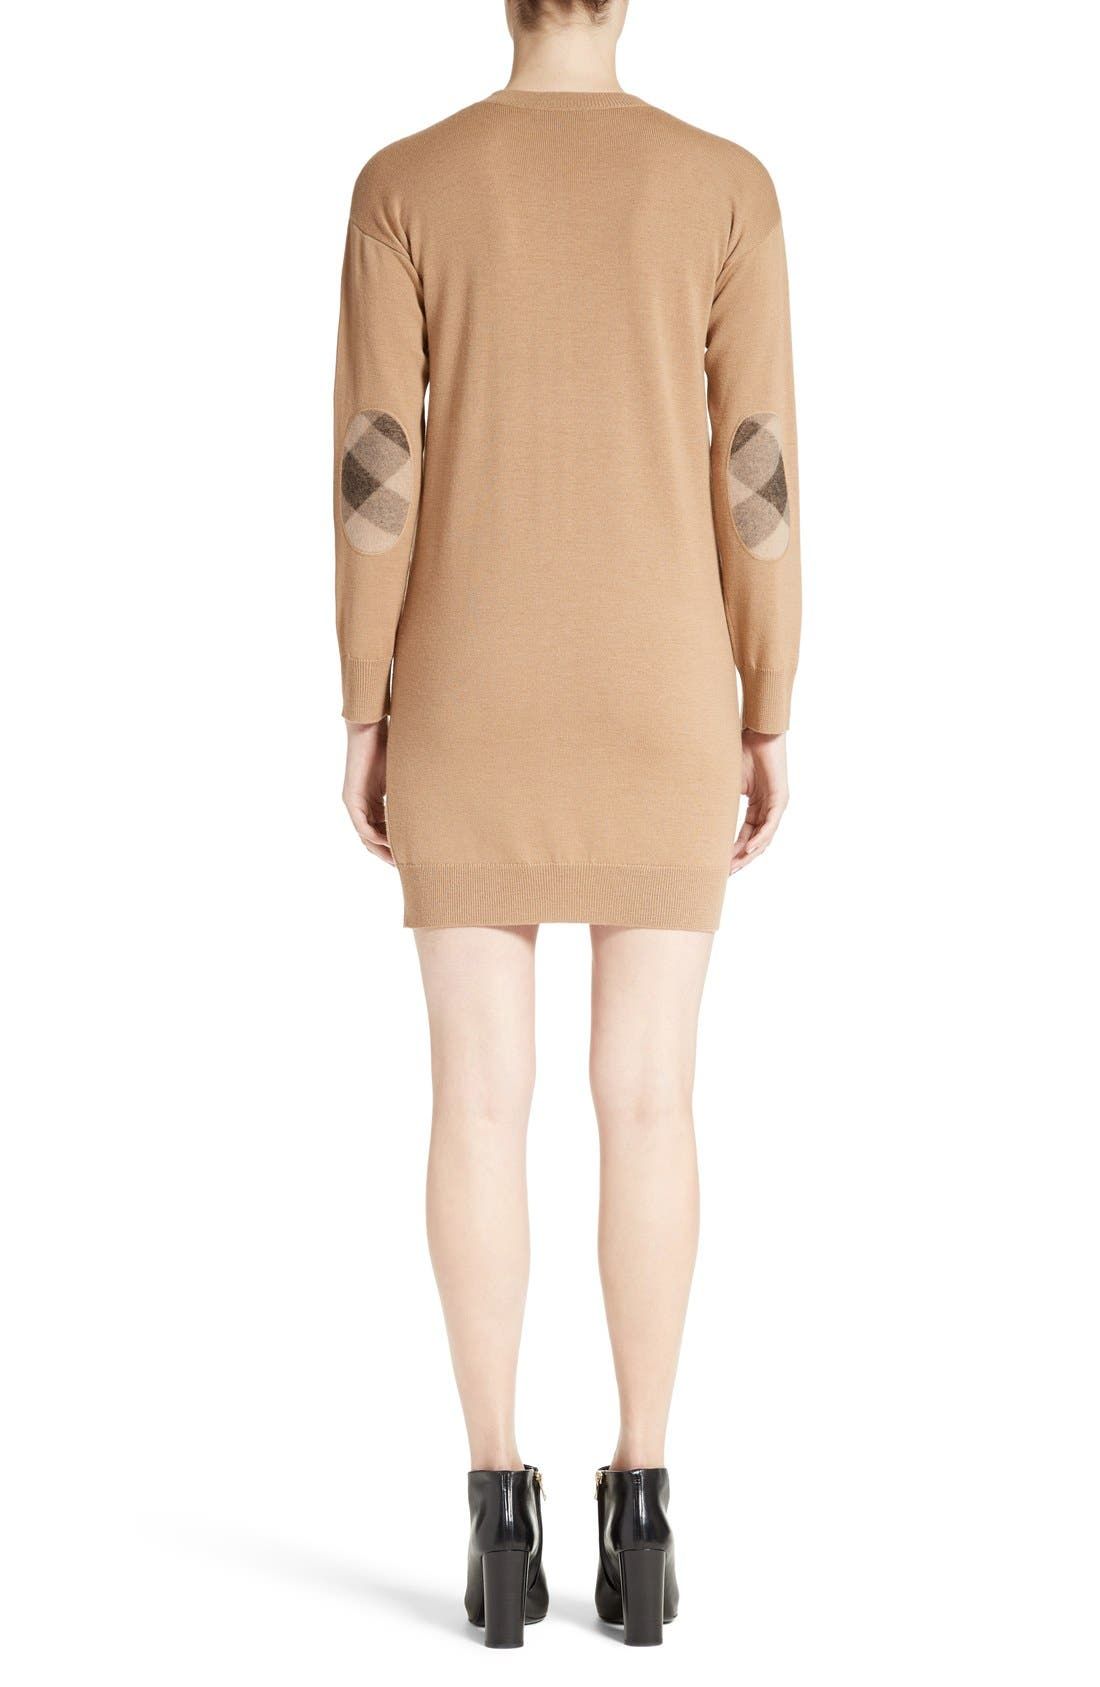 BURBERRY,                             Alewater Elbow Patch Merino Wool Dress,                             Alternate thumbnail 10, color,                             CAMEL